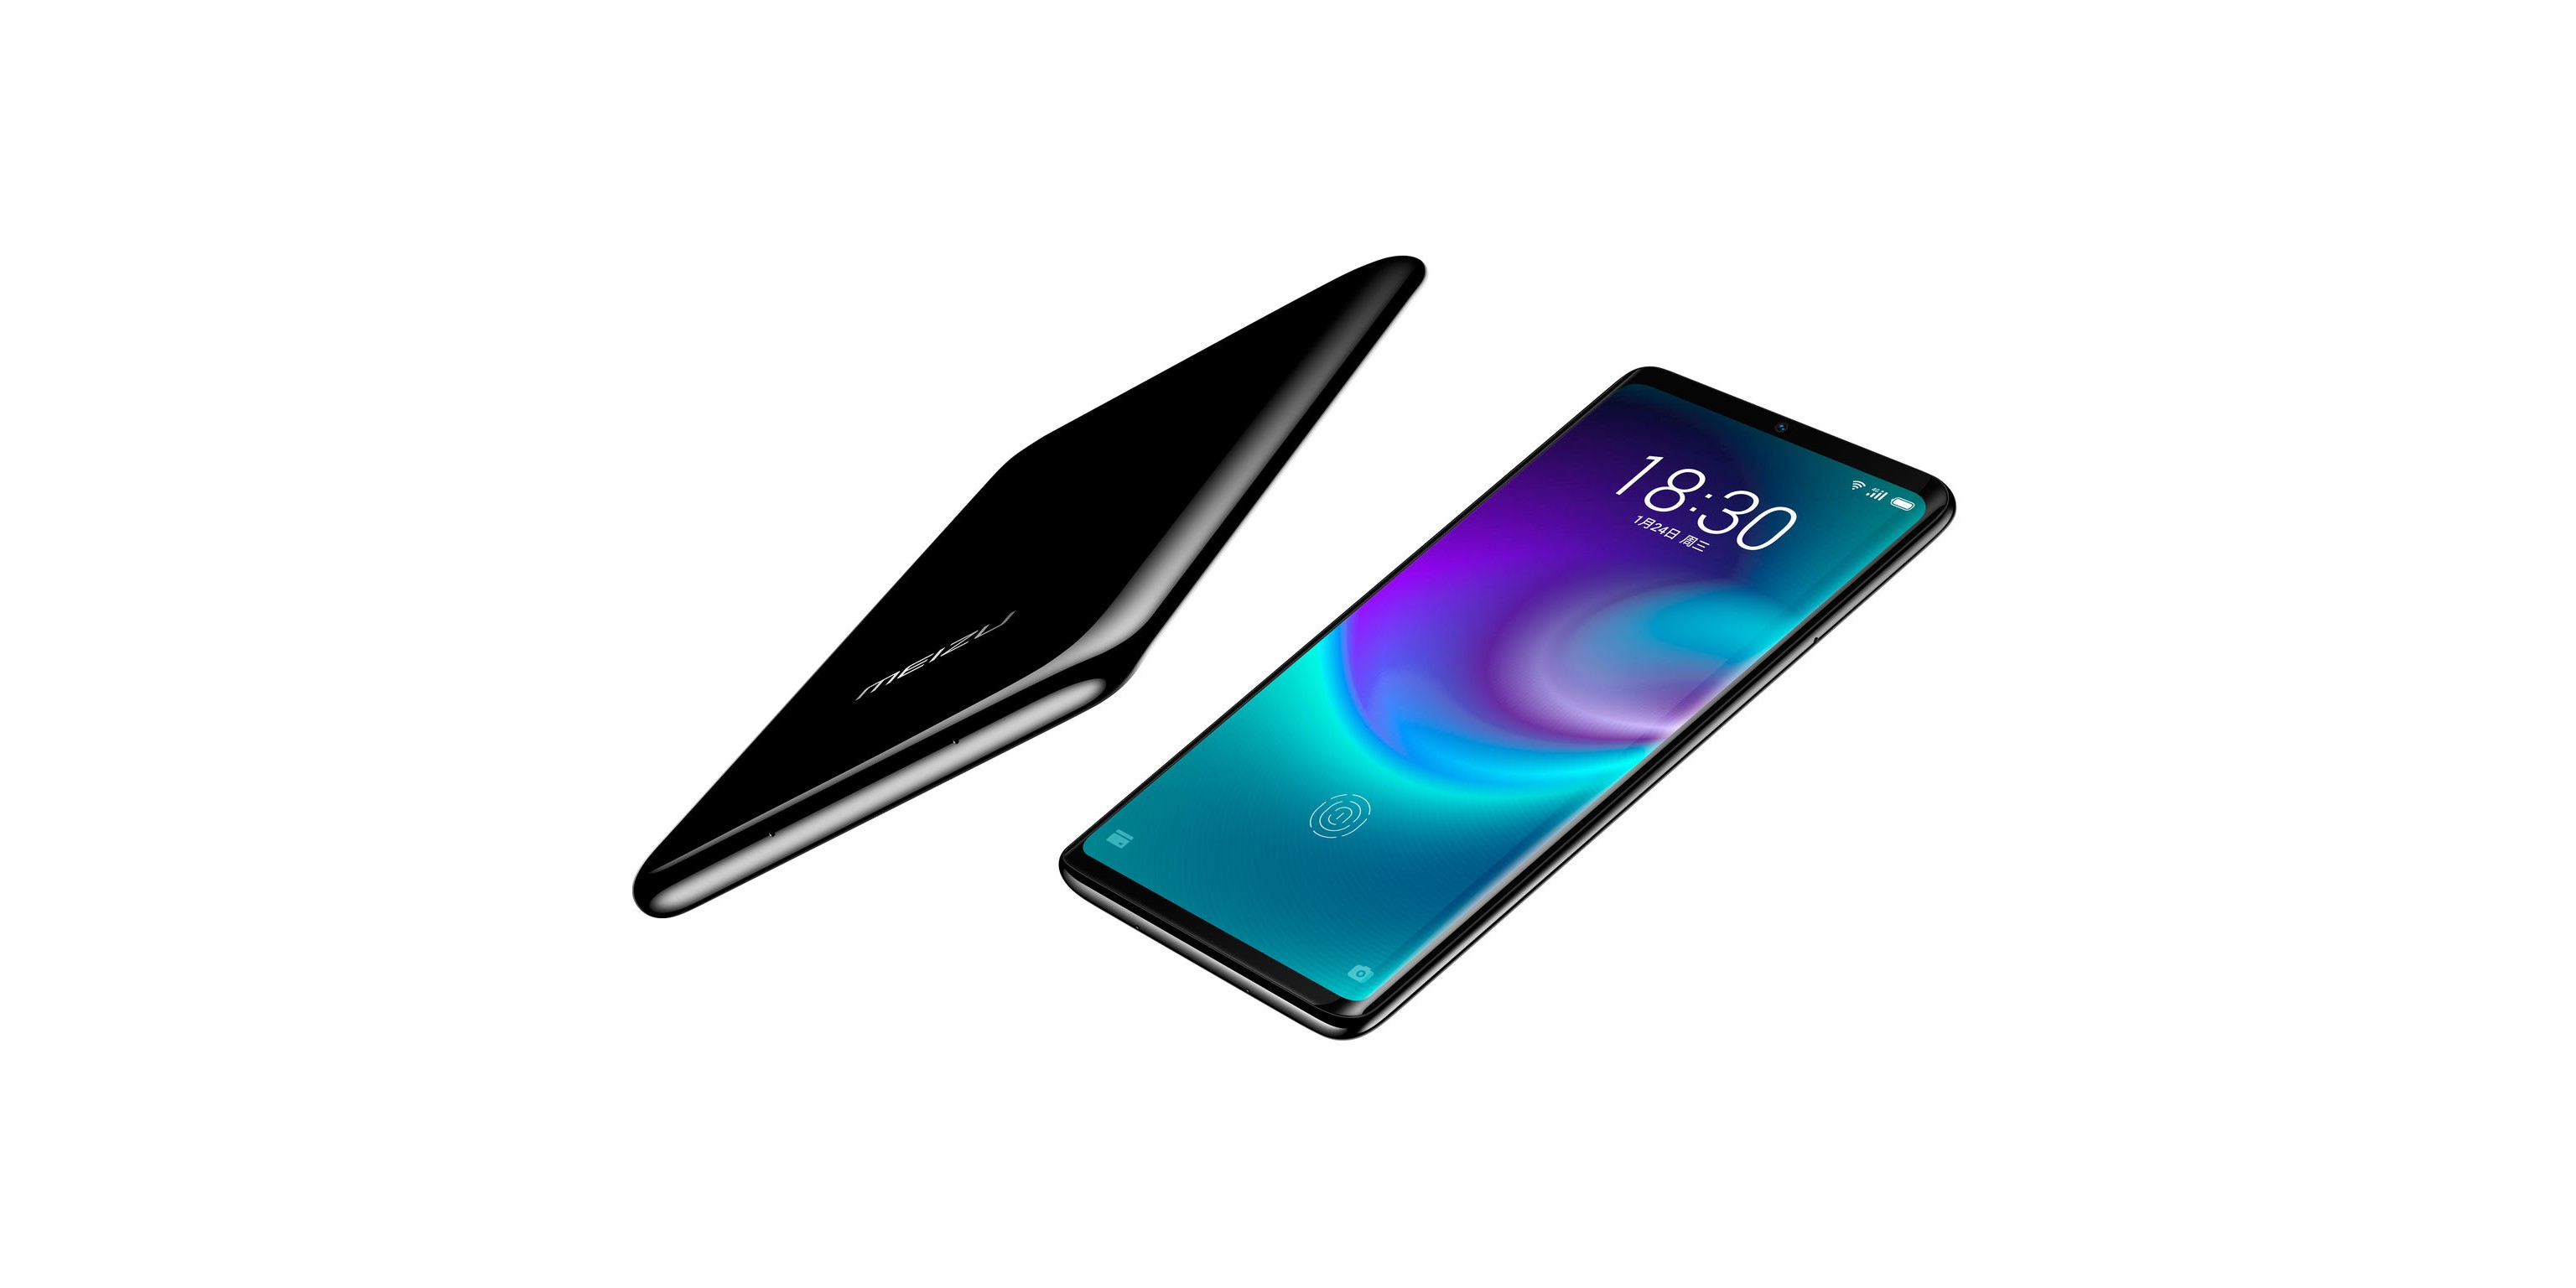 <p>OPPO Includes a concept phone with concealable Vents and cameras in the Functions thumbnail